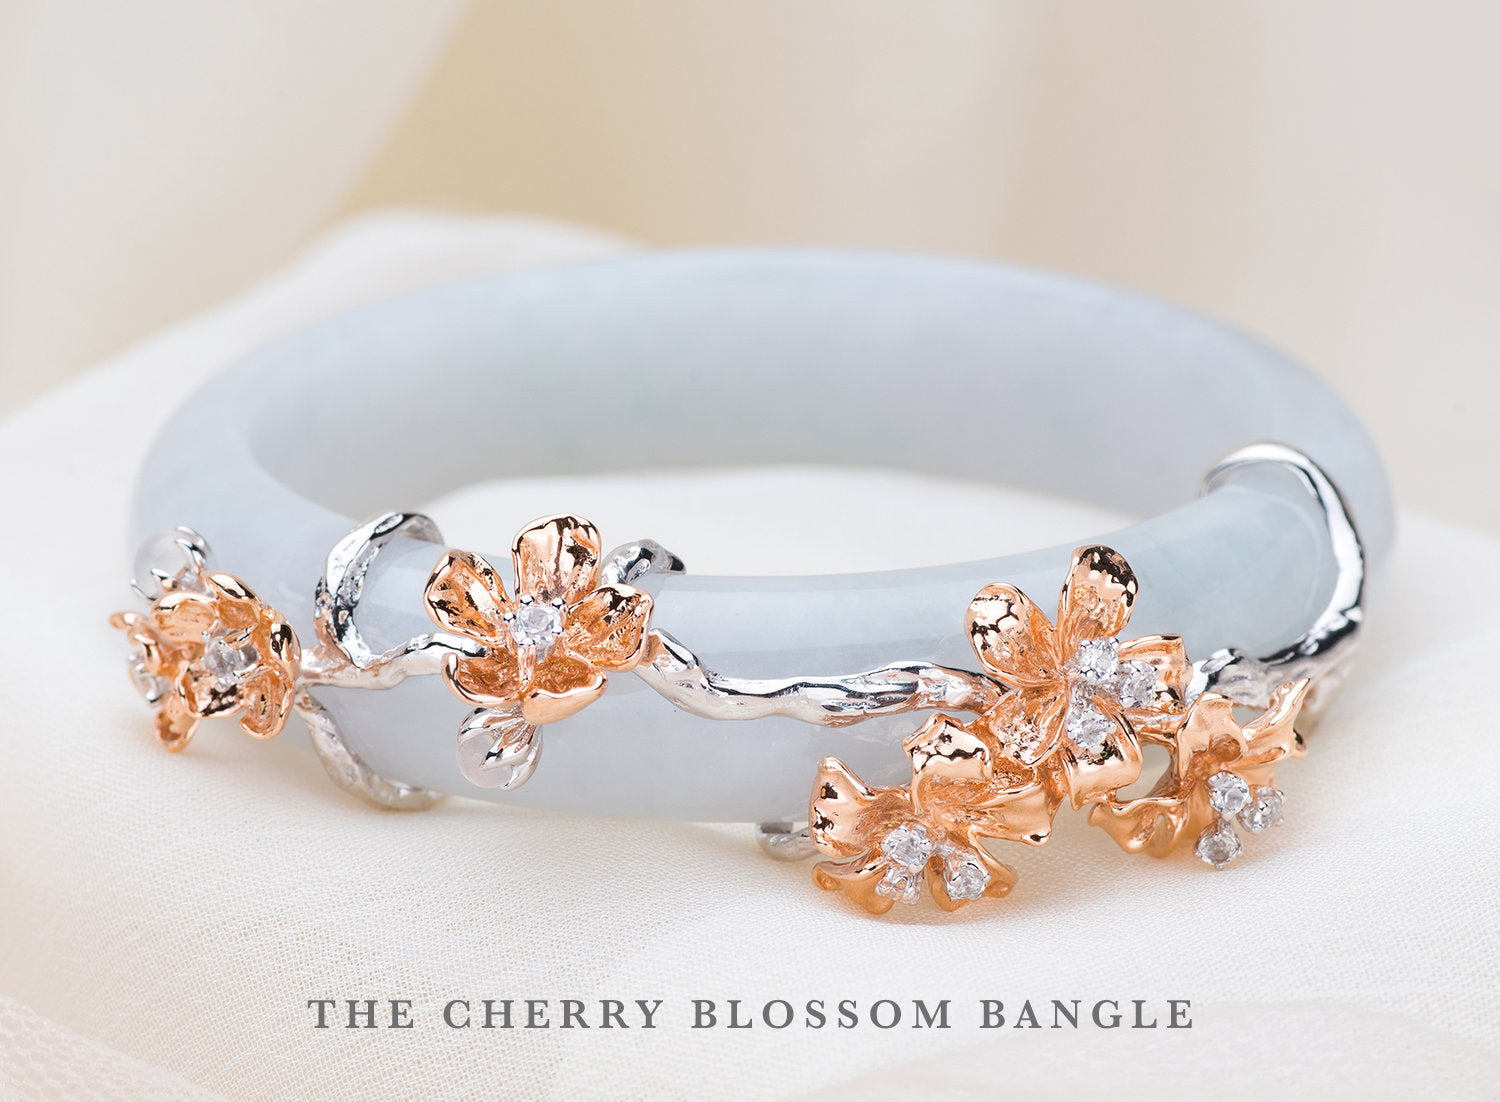 Cherry Blossom Bangle